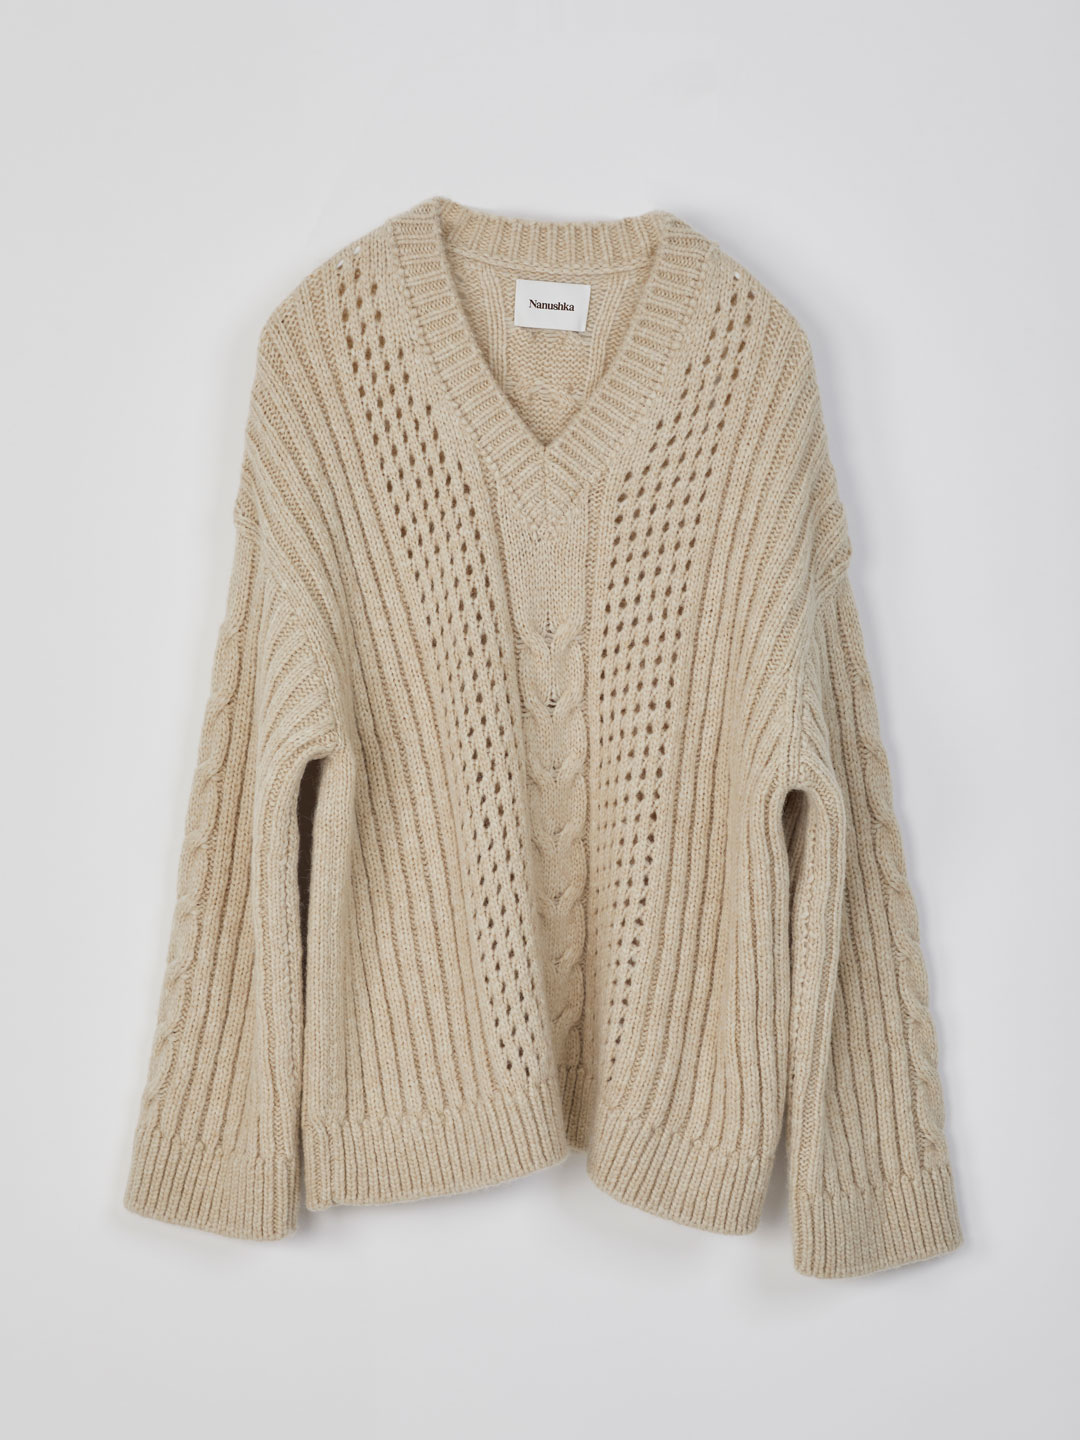 Arwan / Cable Knit Sweater - Cream